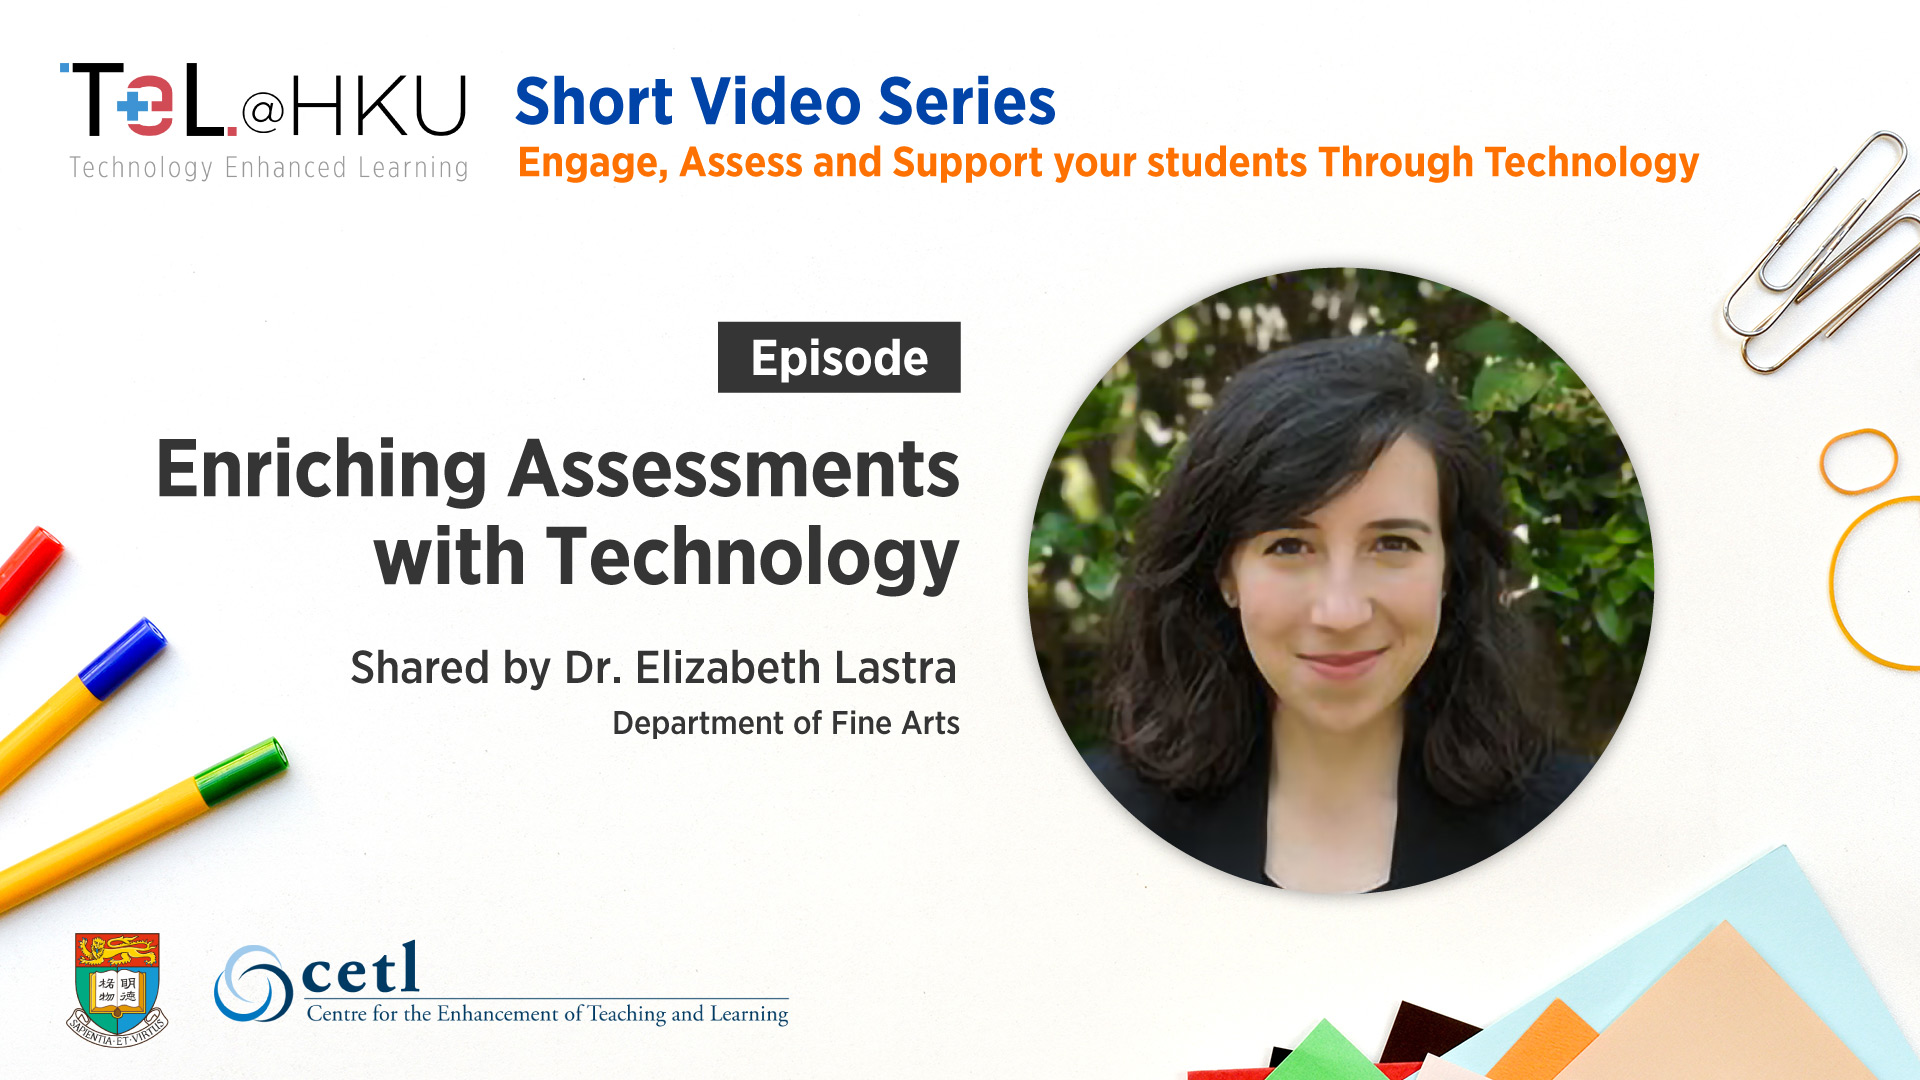 TeL@HKU Short Video Series – Enriching Assessments with Technology shared by Dr. Elizabeth Lastra